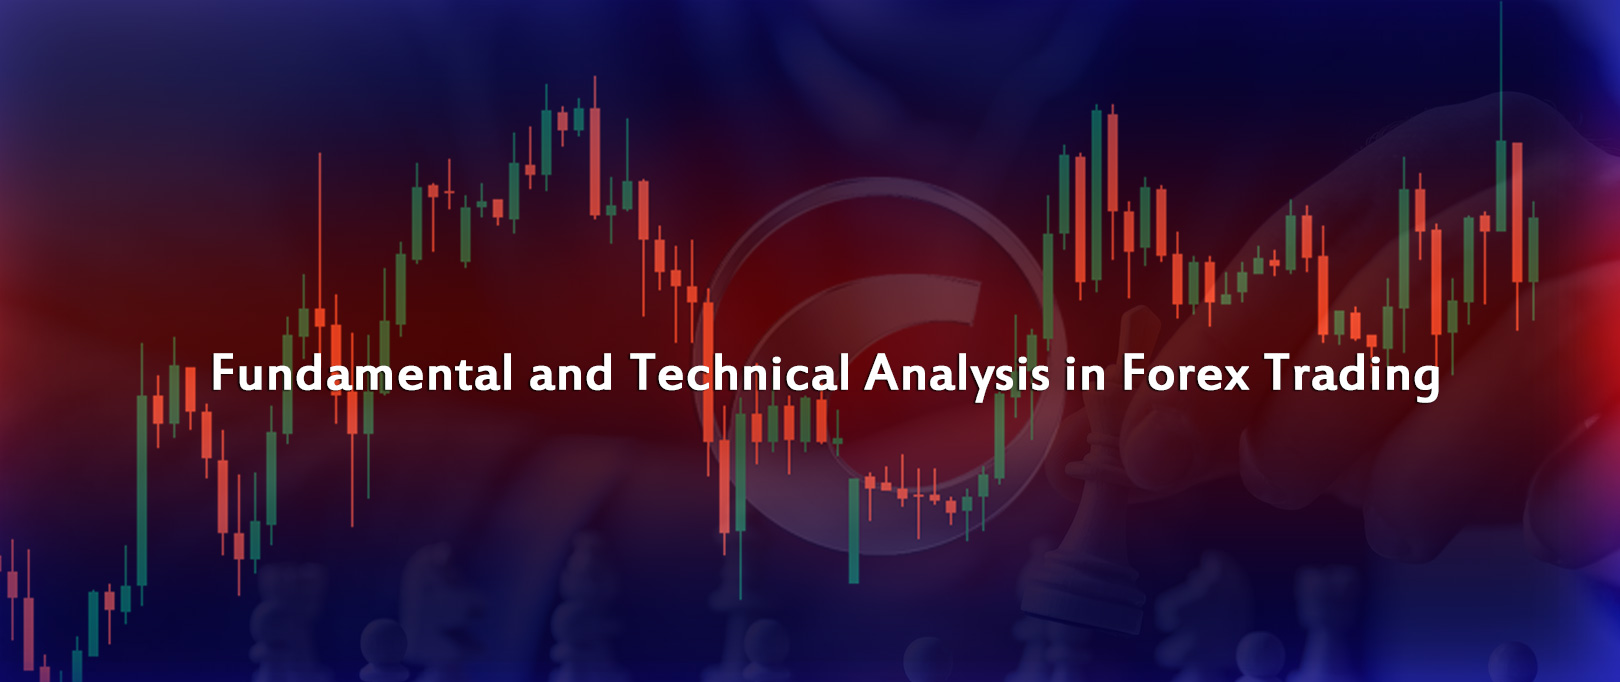 Fundamental-and-Technical-Analysis-in-Forex-Trading-by-Prathilaba